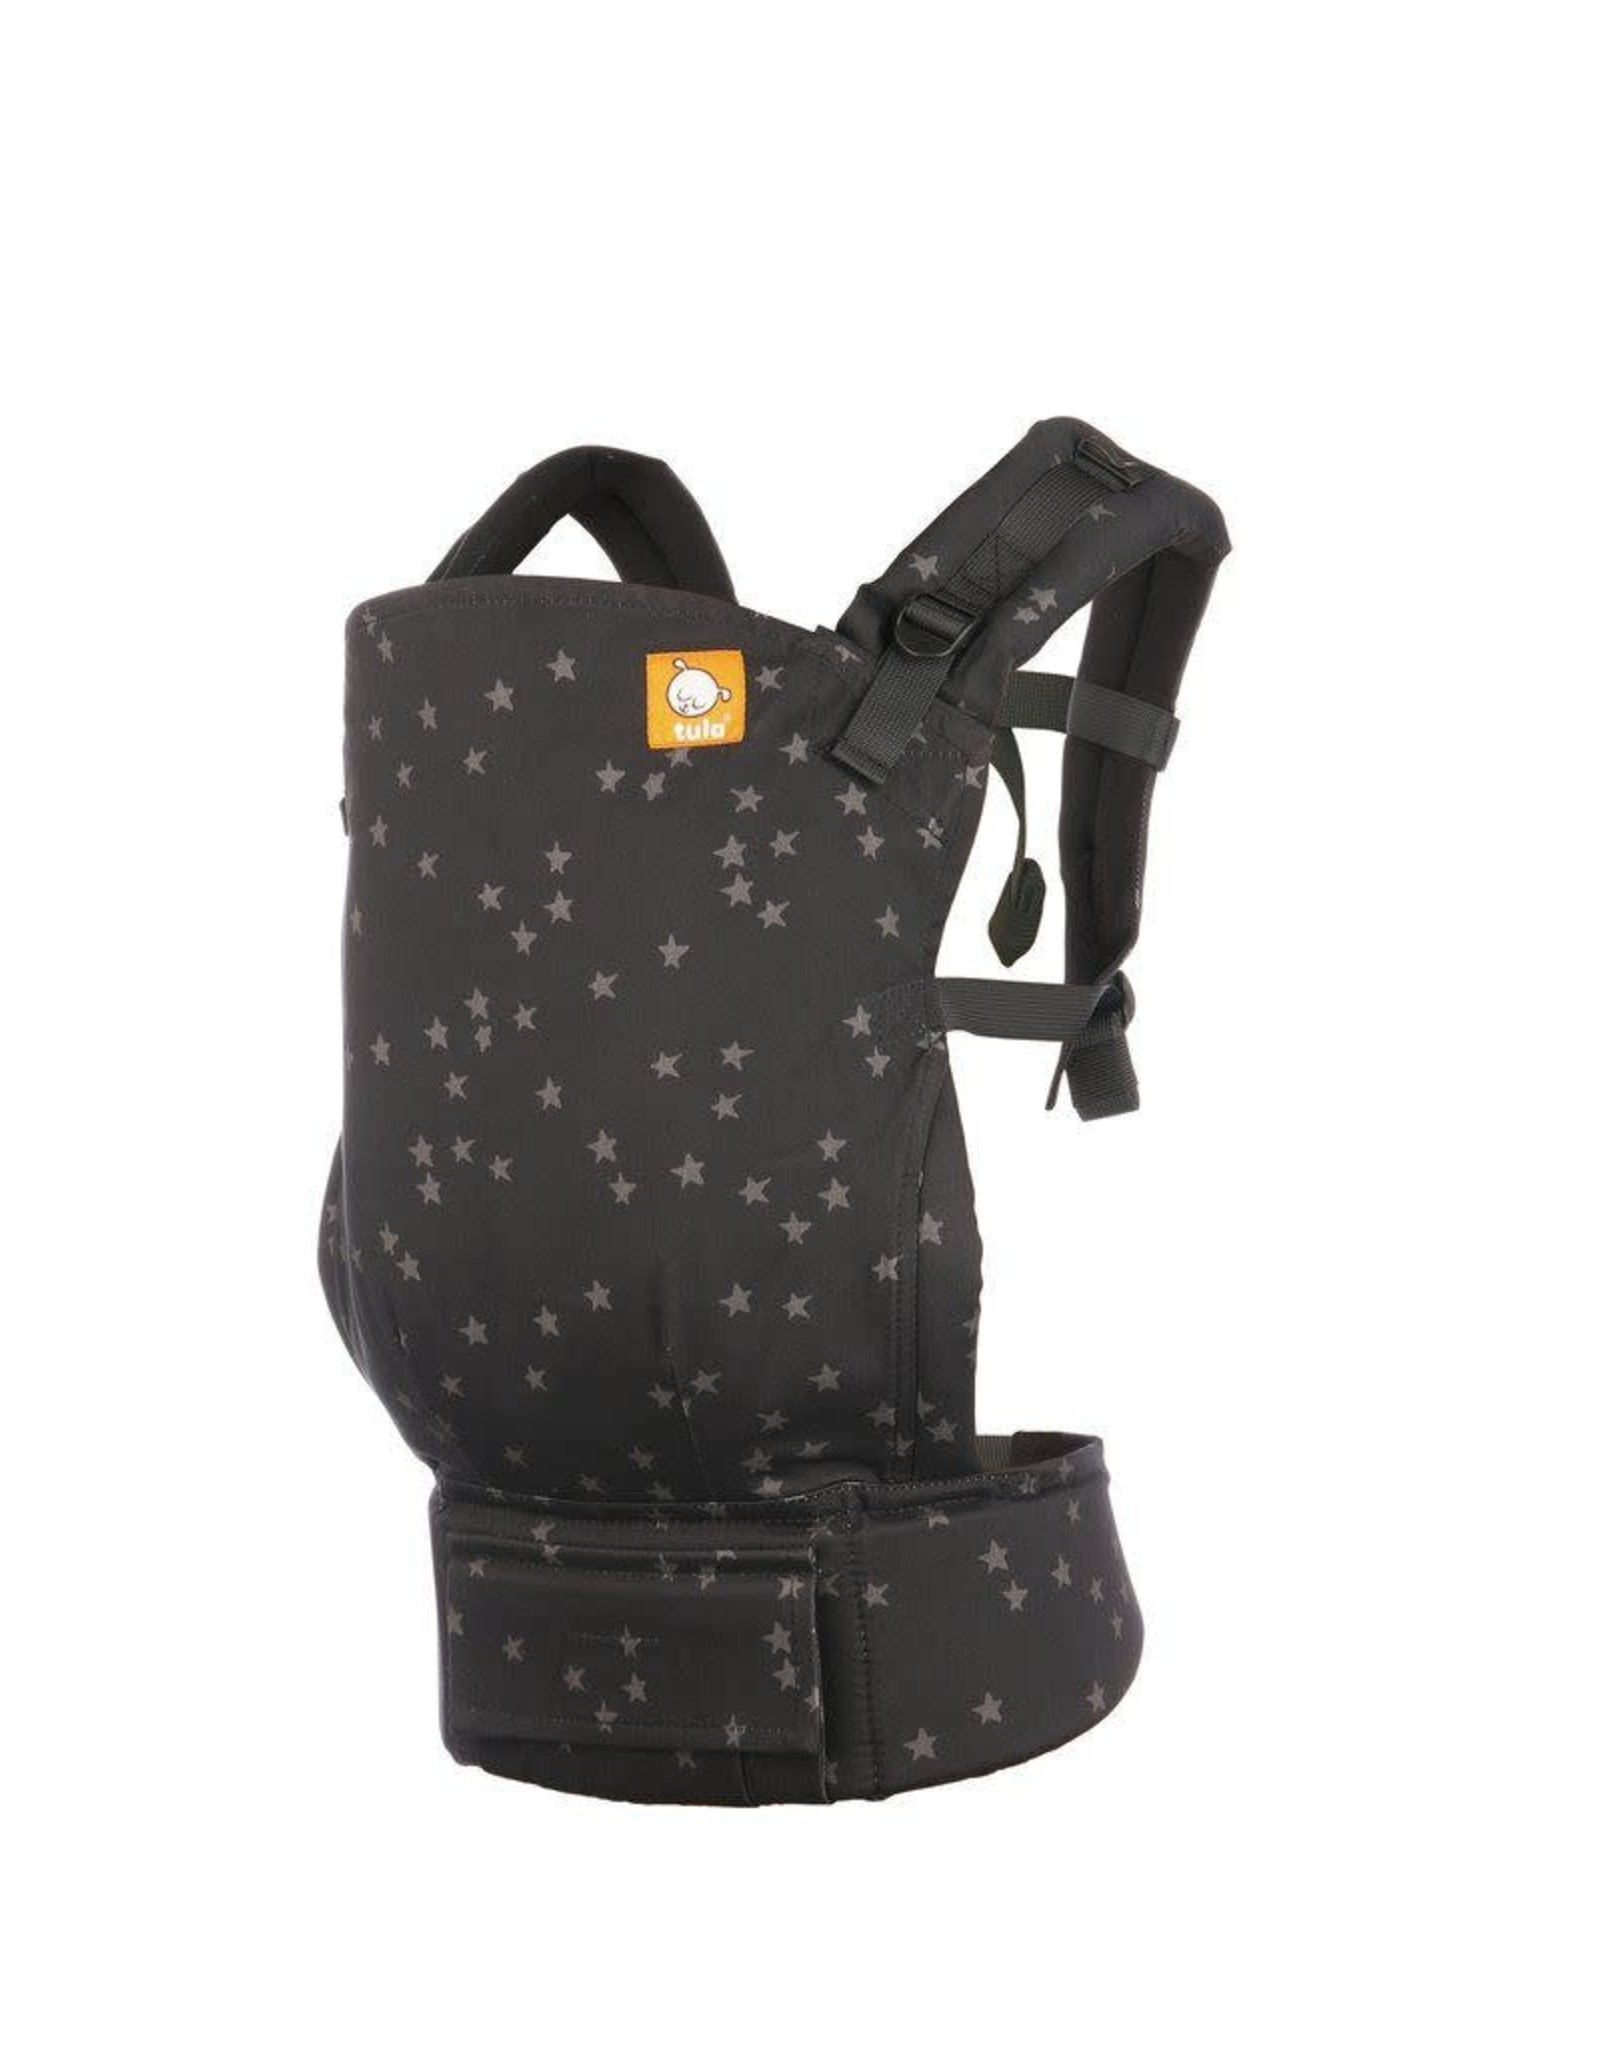 Tula Tula Standard Carrier, Discover